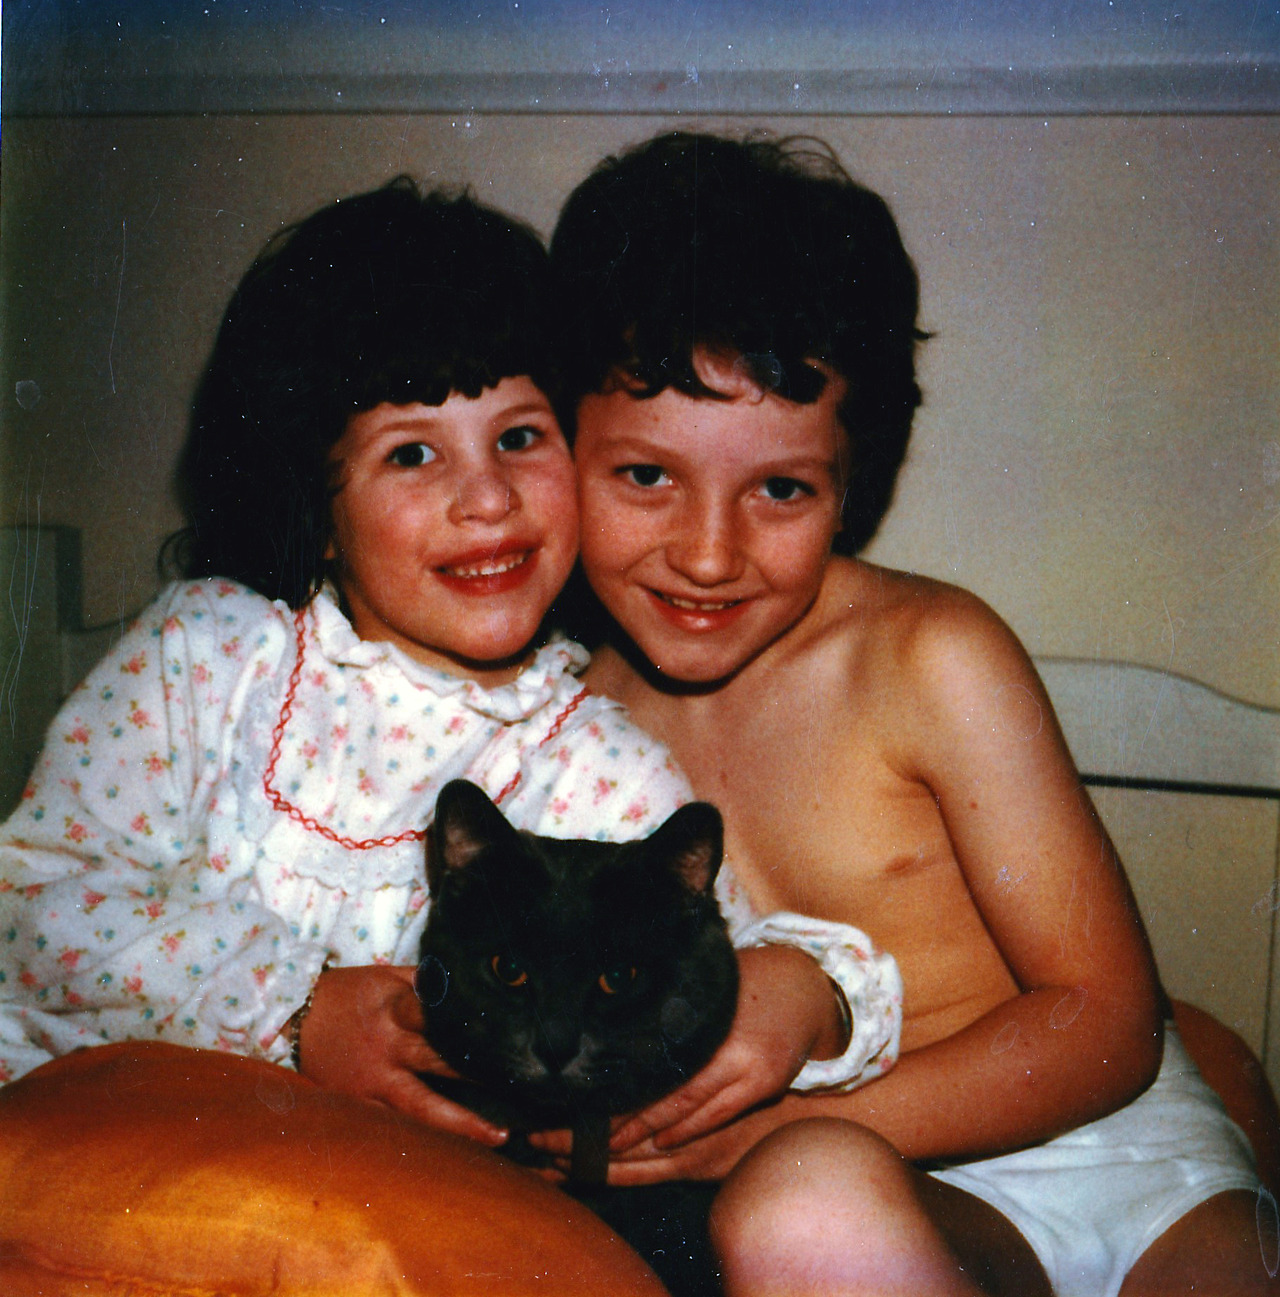 Me at about 8 years old with my little sister, my cat Shadow, and a rad pair of tighty-whiteys.